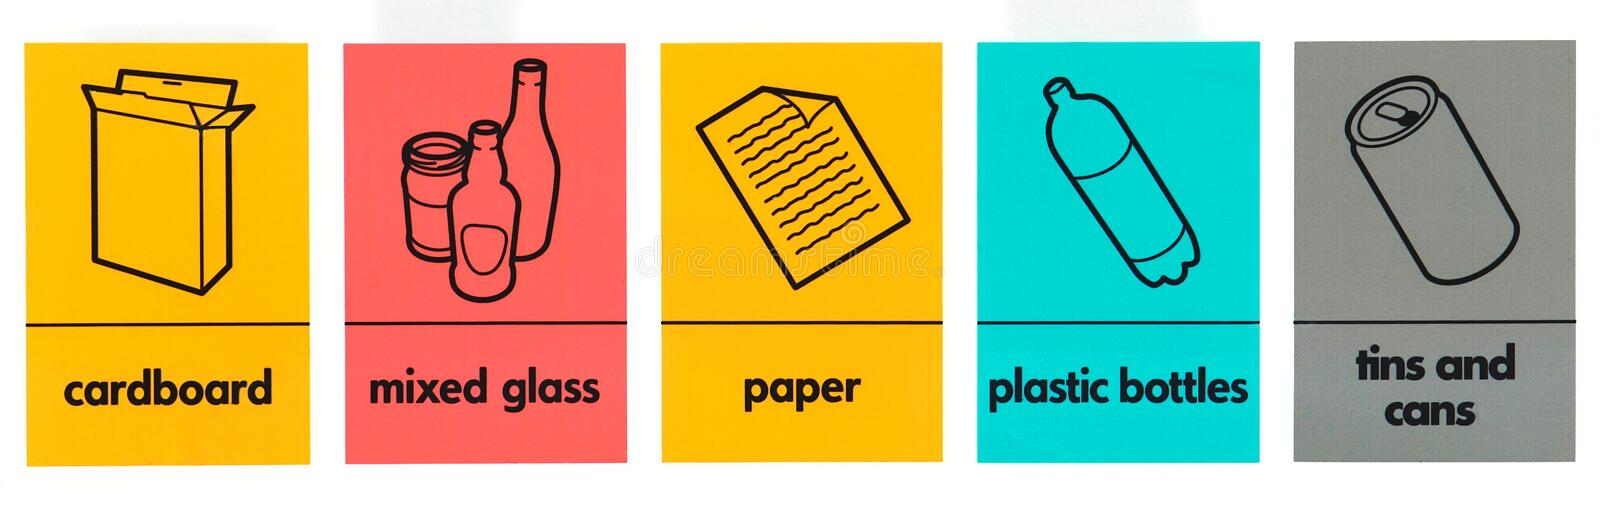 Waste icons. Various waste recycling, collecting signs royalty free illustration